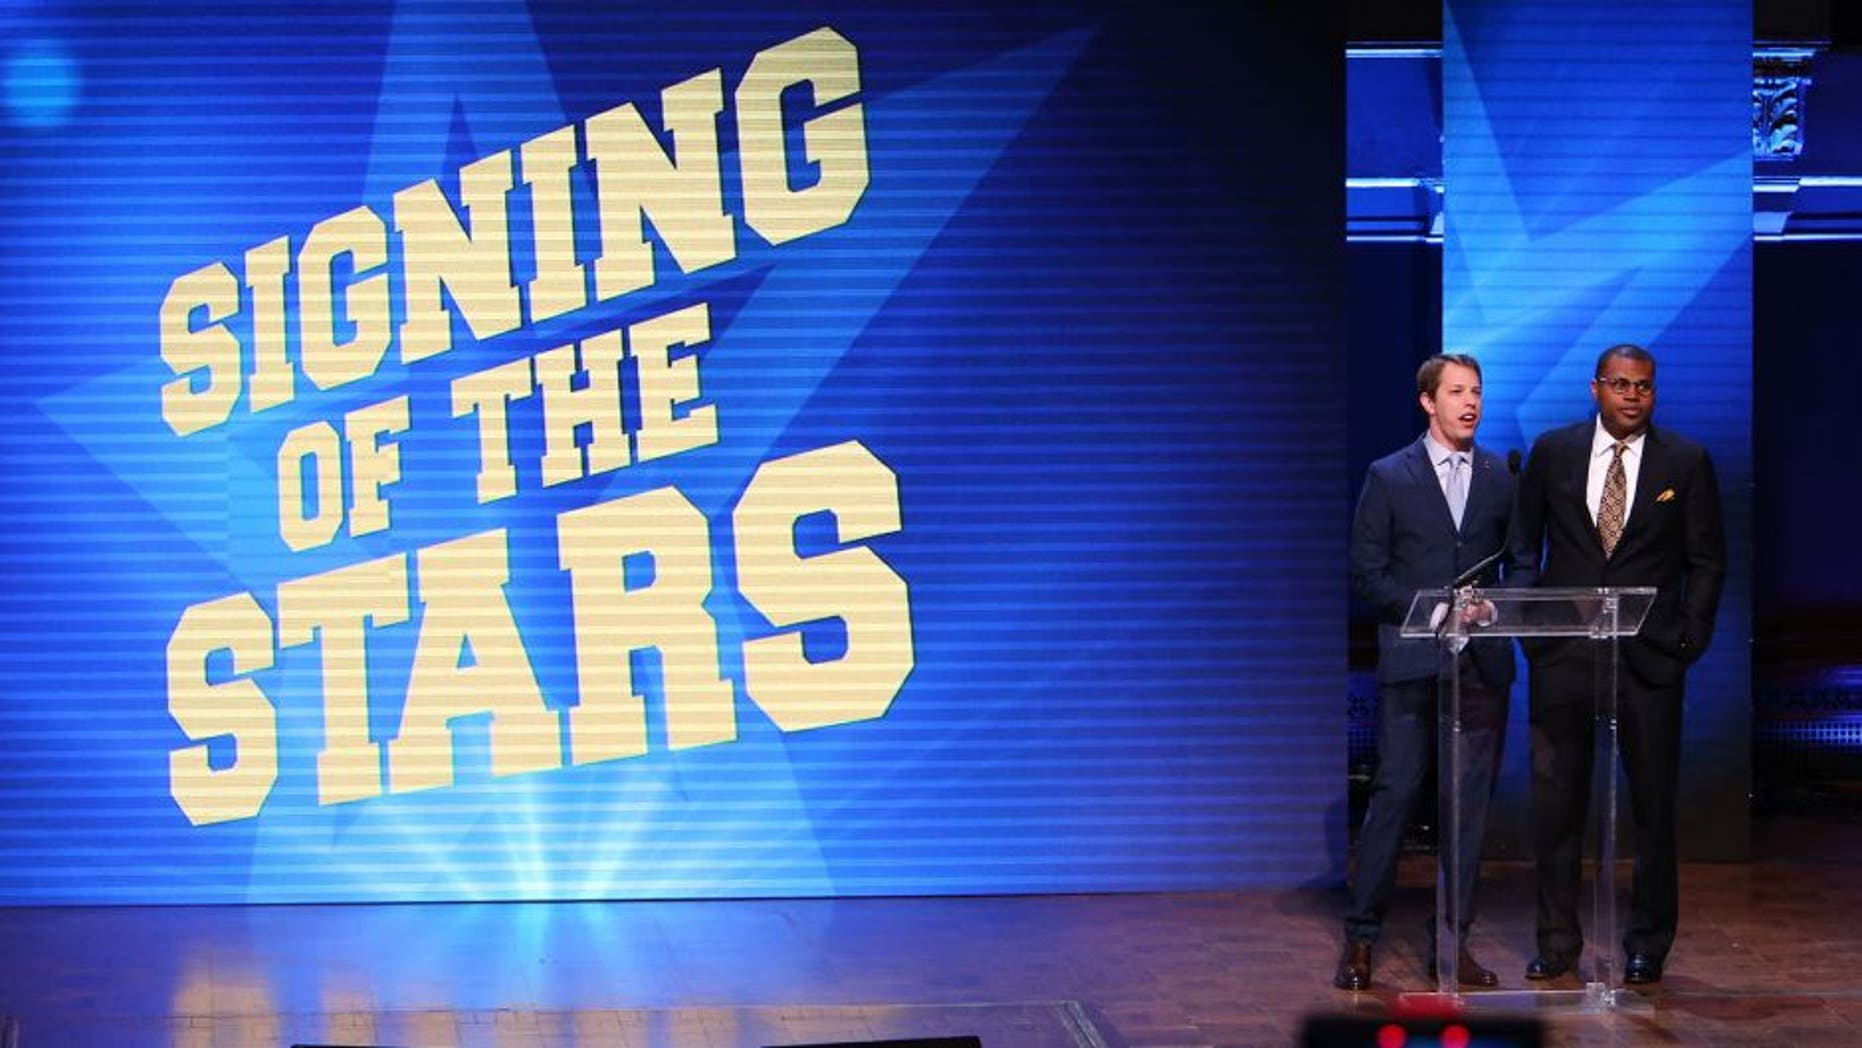 ANN ARBOR, MI - FEBRUARY 3: NASCAR driver Brad Keselowski speaks to the fans during the Michigan Signing of the Stars event at Hill Auditorium on February 3, 2016 in Ann Arbor, Michigan. (Photo by Rey Del Rio/Getty Images)